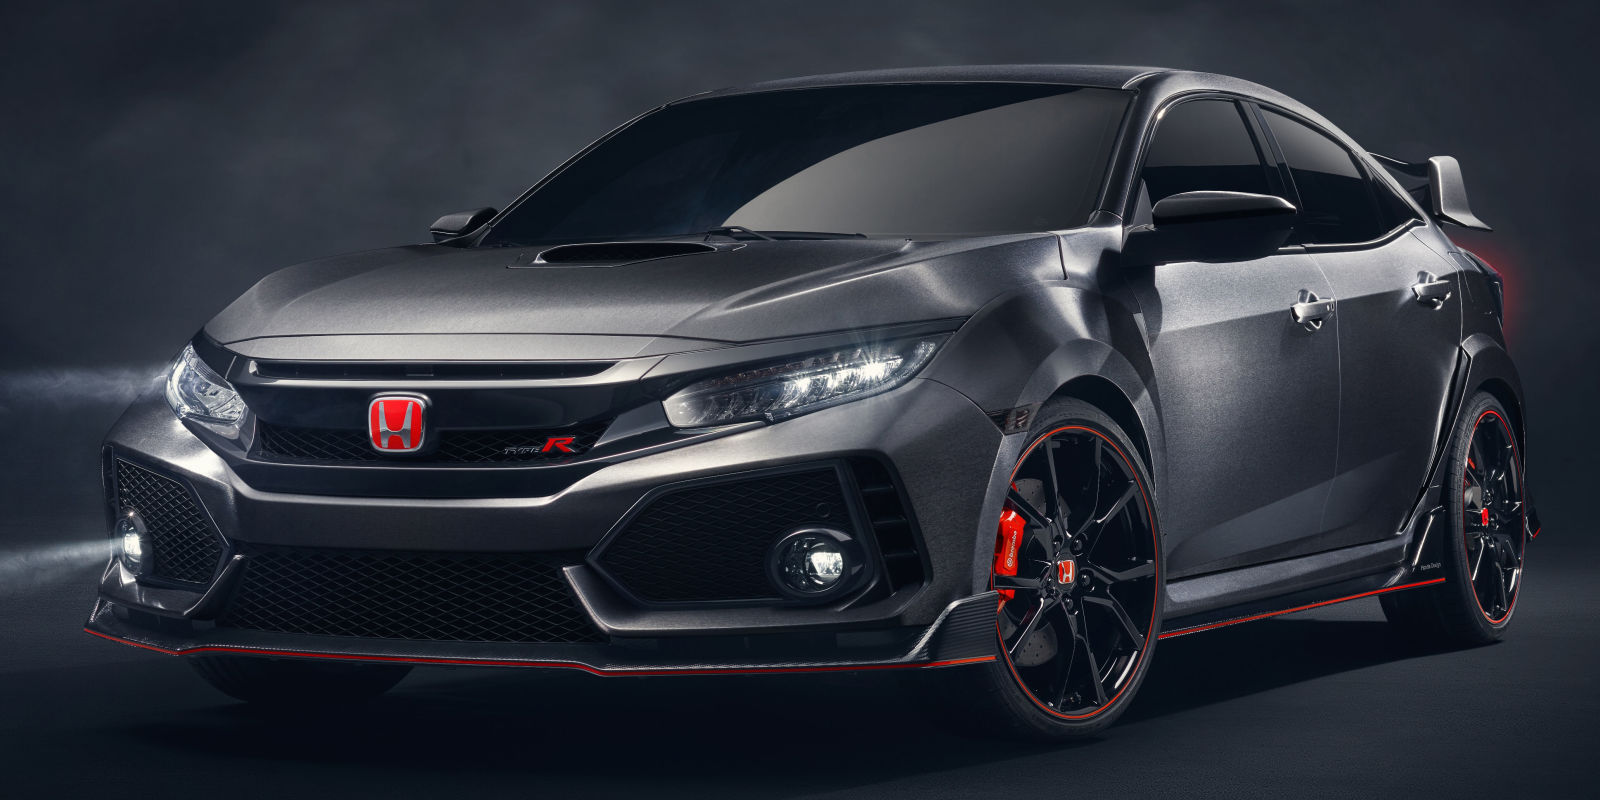 new civic type r 2017 civic type r prototype revealed. Black Bedroom Furniture Sets. Home Design Ideas